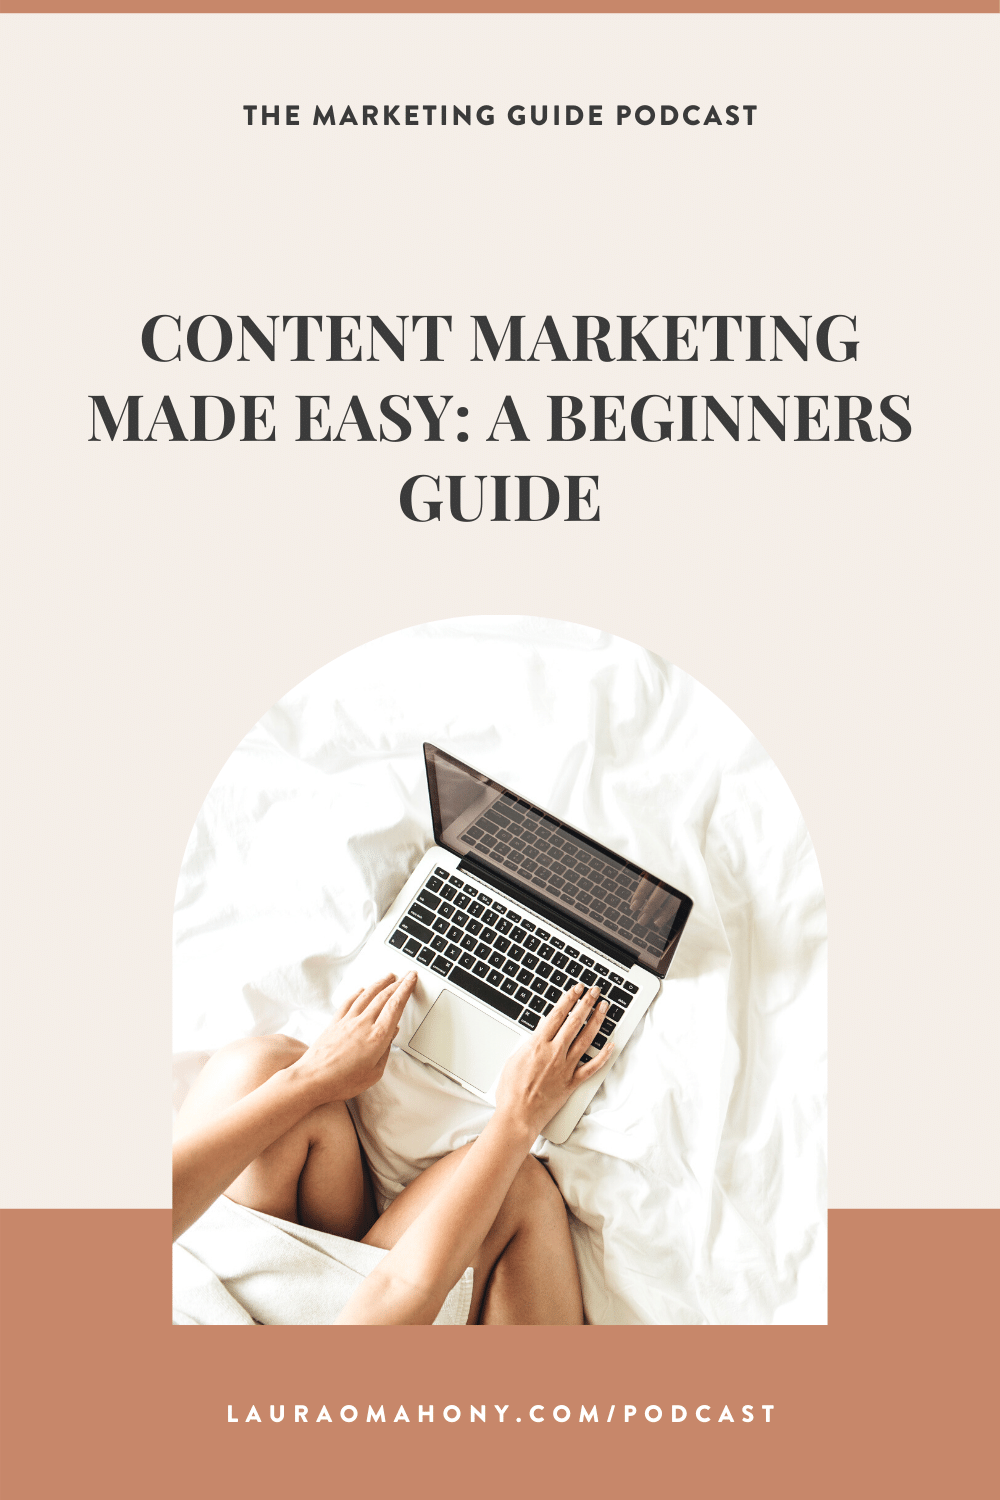 #63 - Content Marketing Made Easy: A Beginners Guide